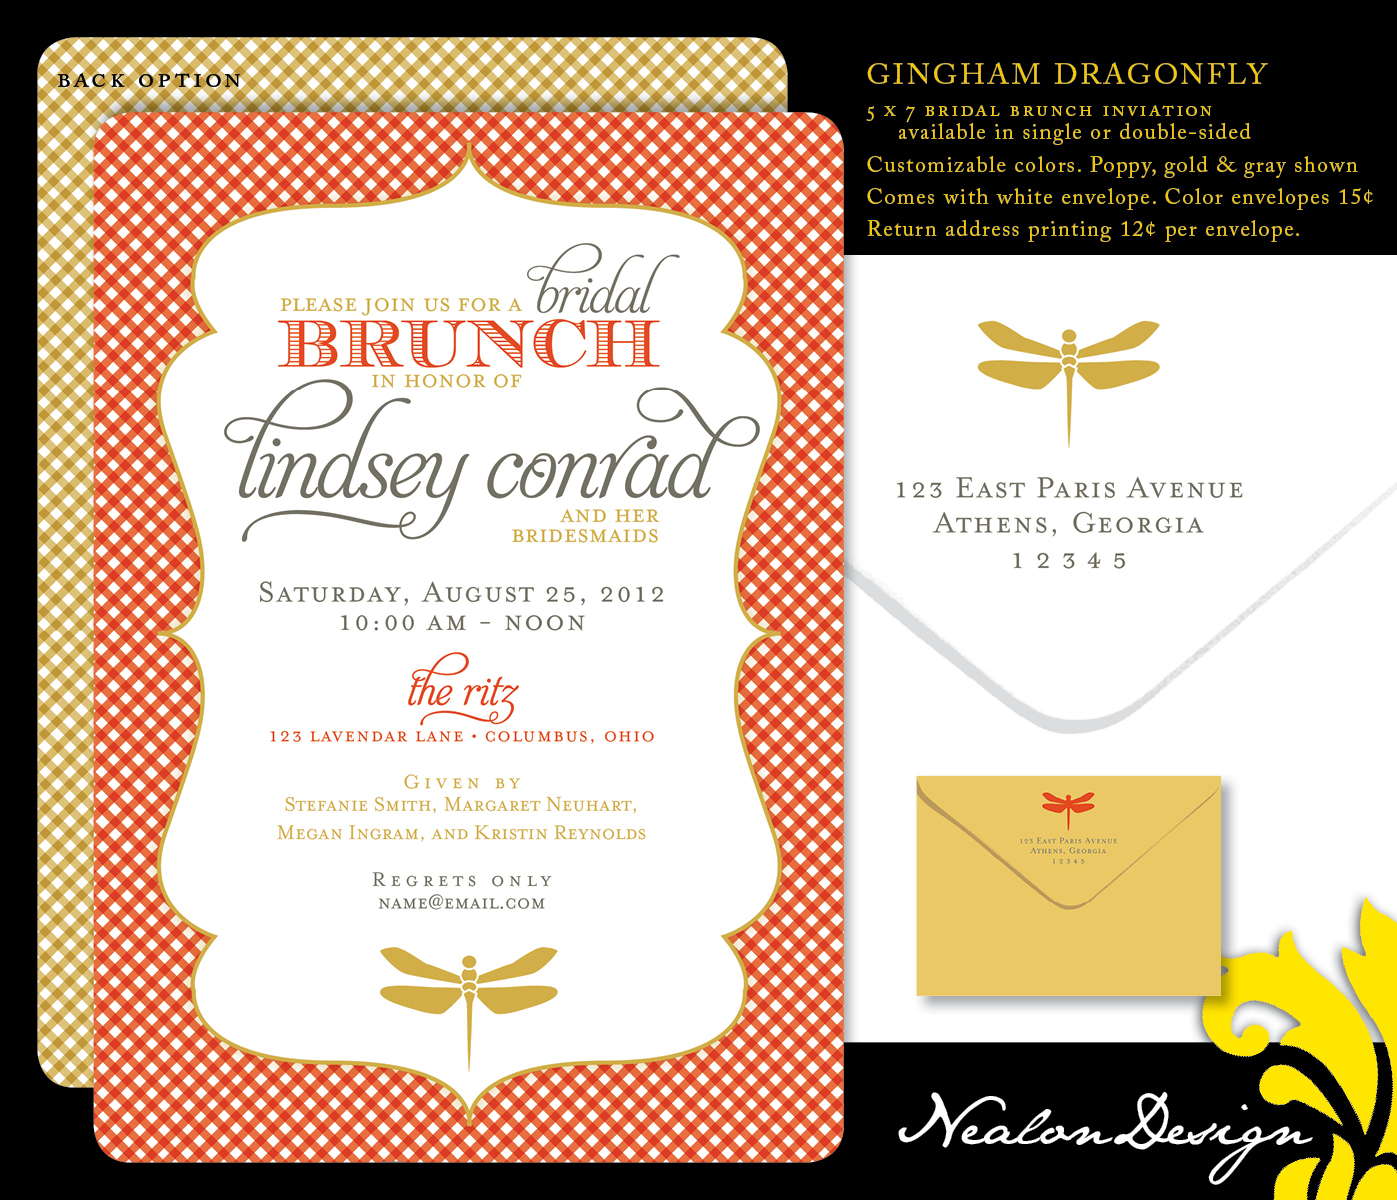 Nealon Design: Gingham Dragonfly — Bridal Brunch